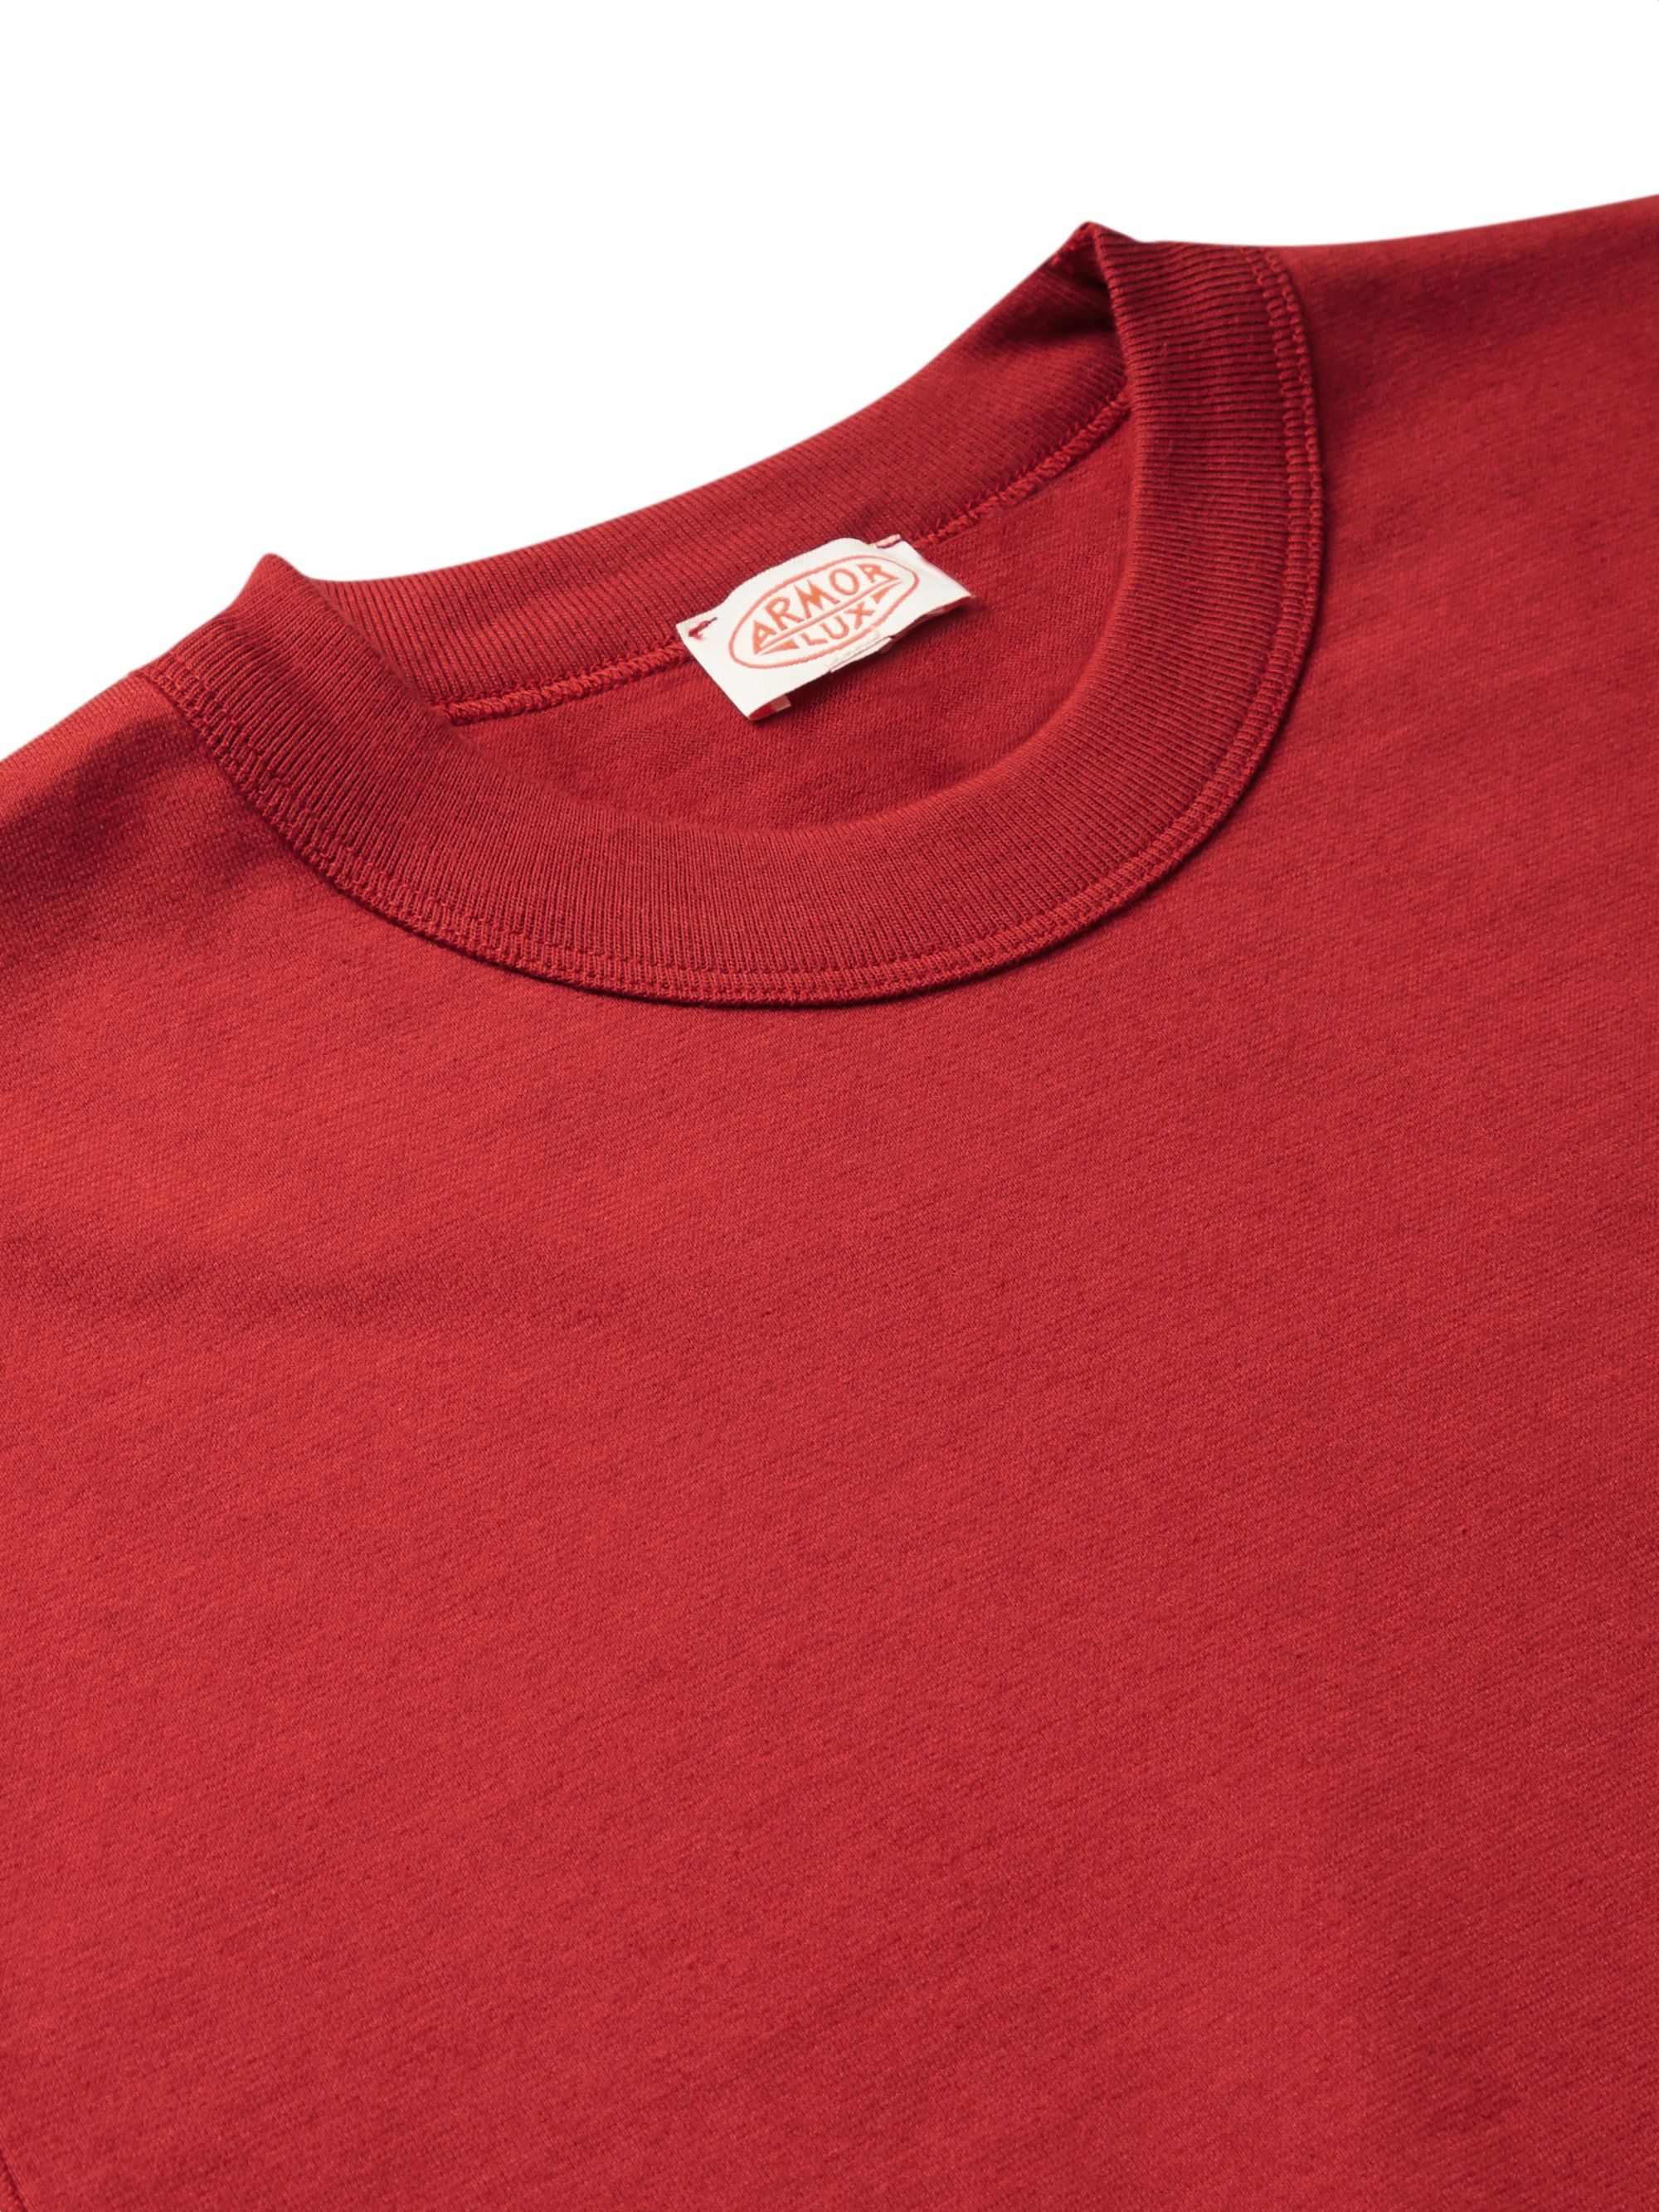 Red Cotton-jersey T-shirt | Armor Lux